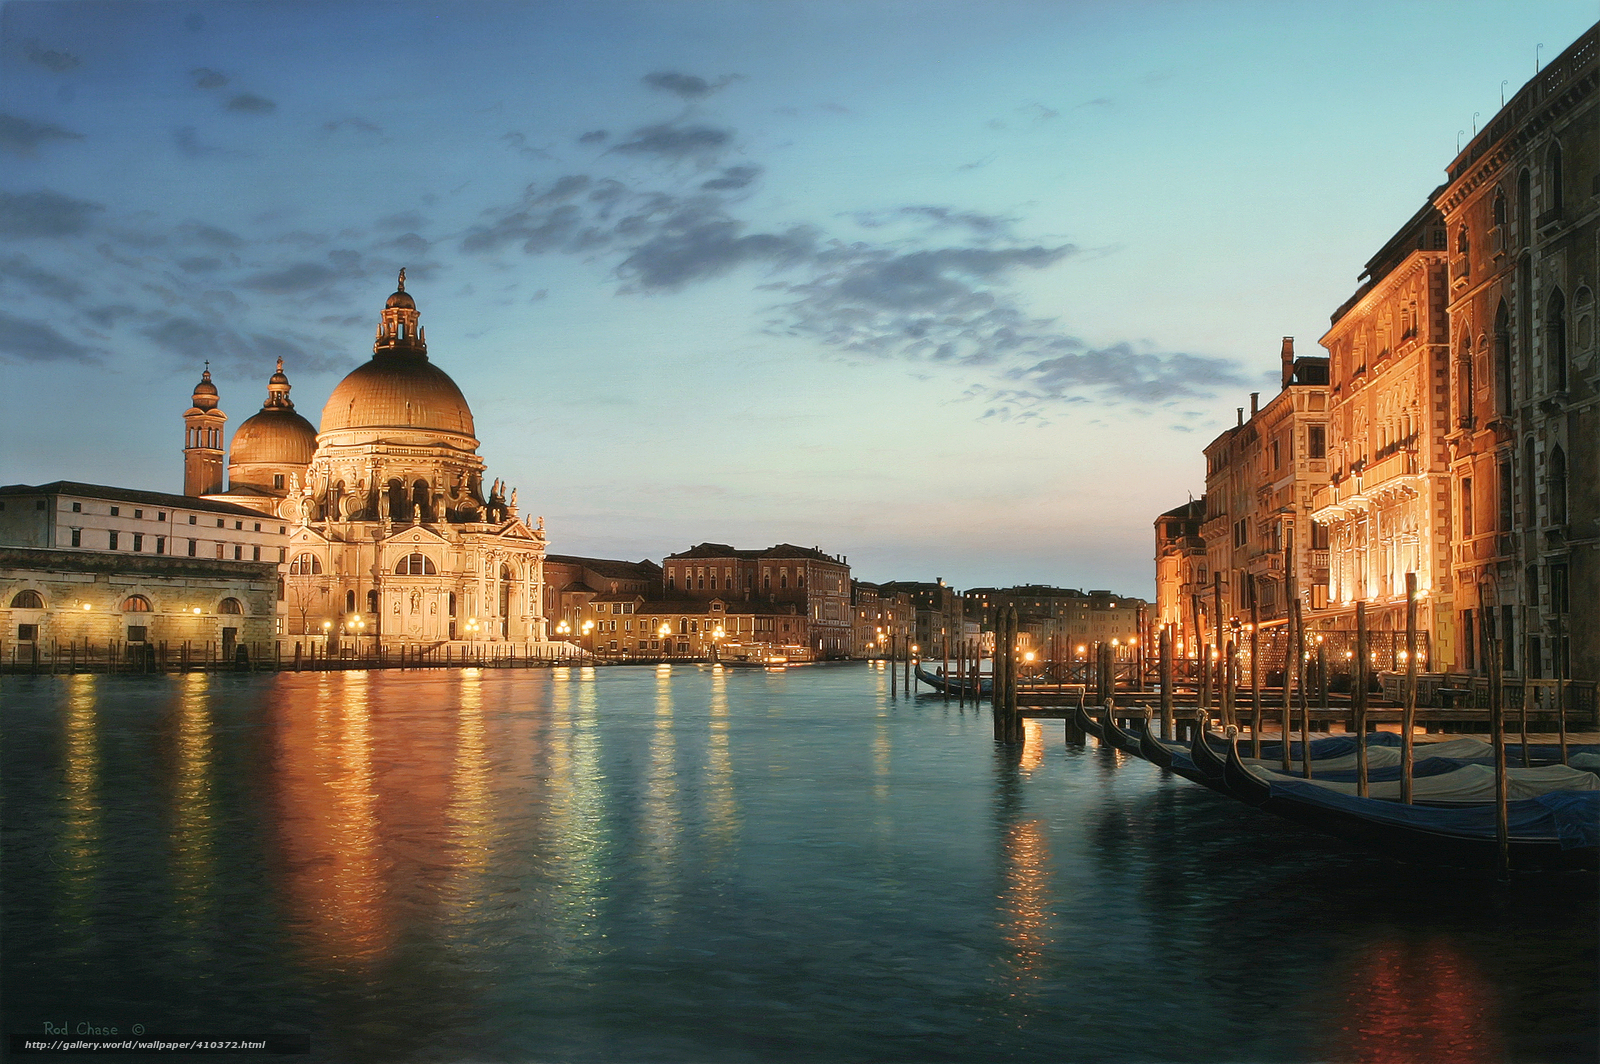 Download wallpaper Venice at night, Venice, Italy, The Grand Canal